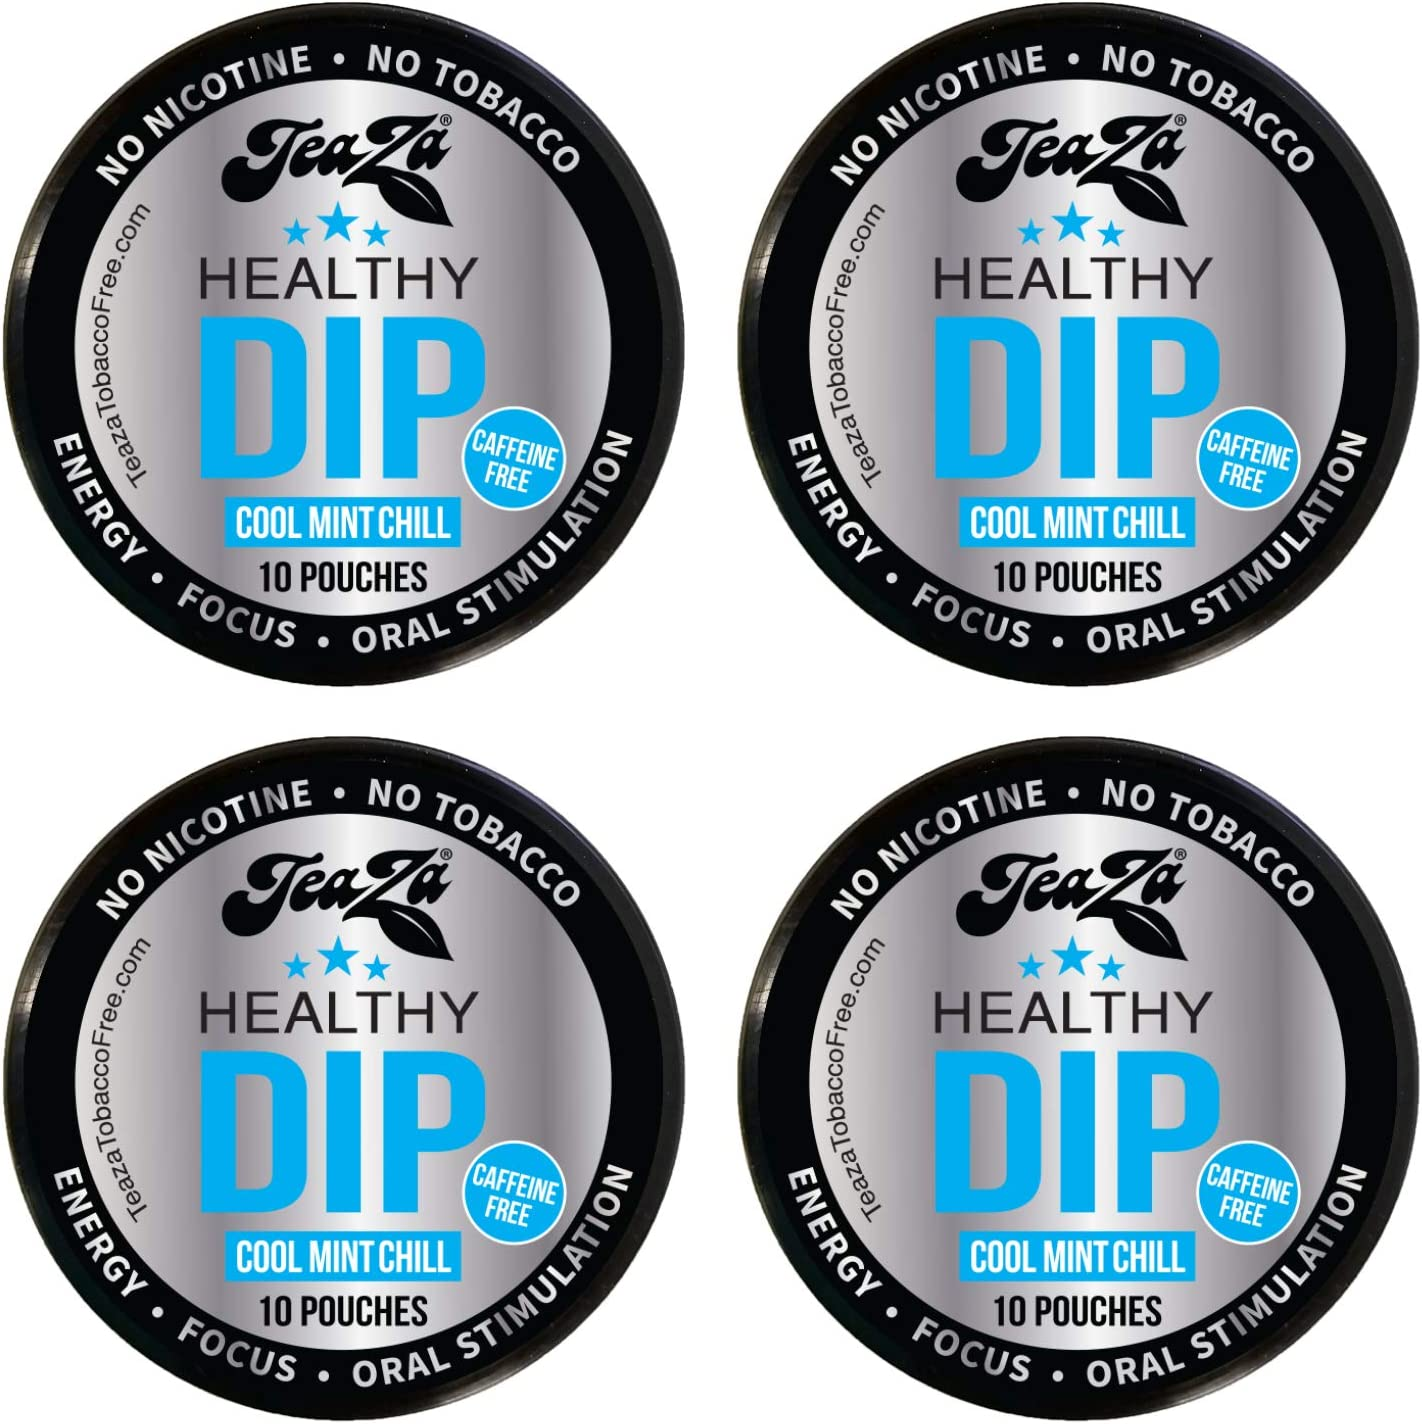 TeaZa Energy Smokeless Tobacco Alternative (4 pk. Cool Mint Chill) Quit Chewing and Dipping Tobacco Snuff - Nicotine and Caffeine Free Herbal Energy Pouch - Flavored Tobacco Free Chew